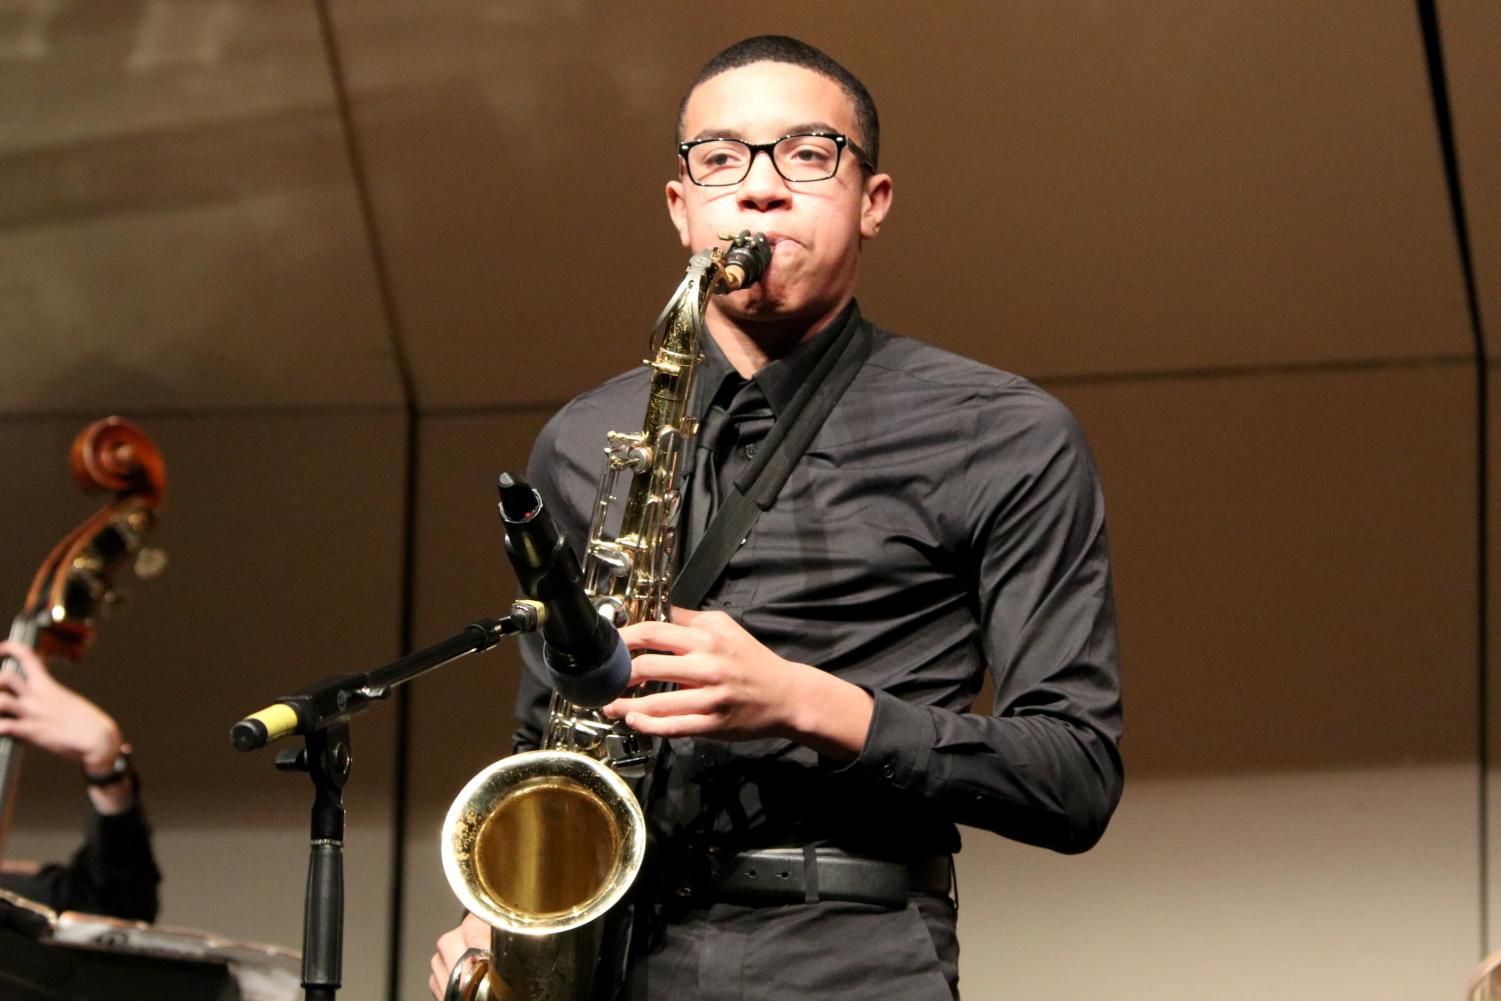 Saxophonist+Jayden+Freeman+plays+the+tenor+sax+during+a+solo+in+the+second+piece.